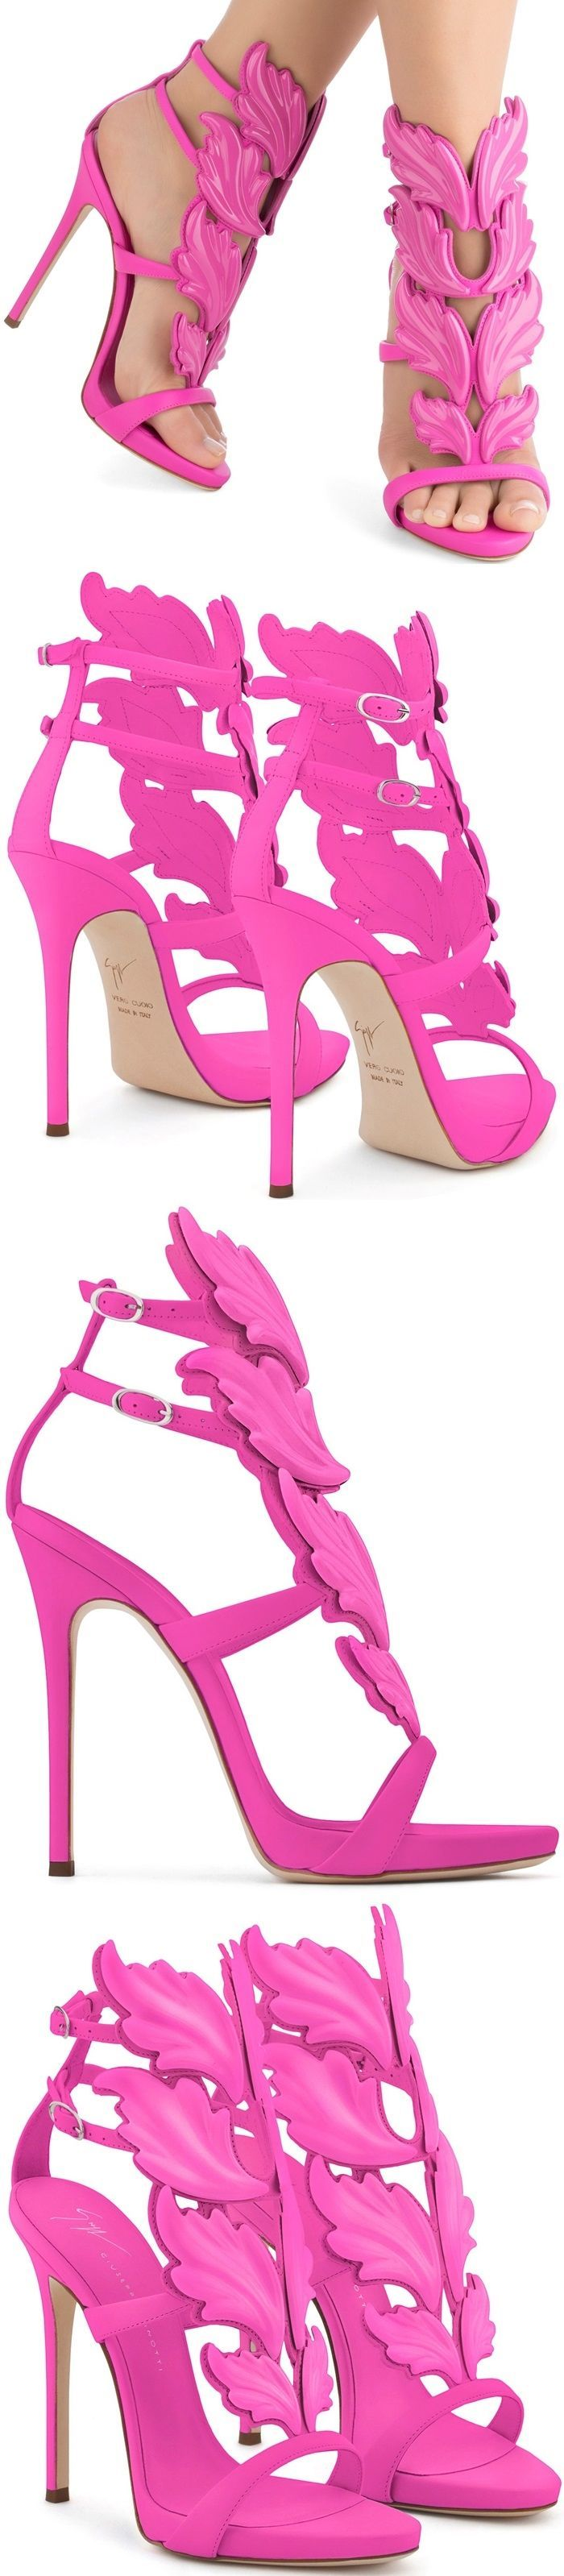 'Cruel' Wing High Heel Sandals